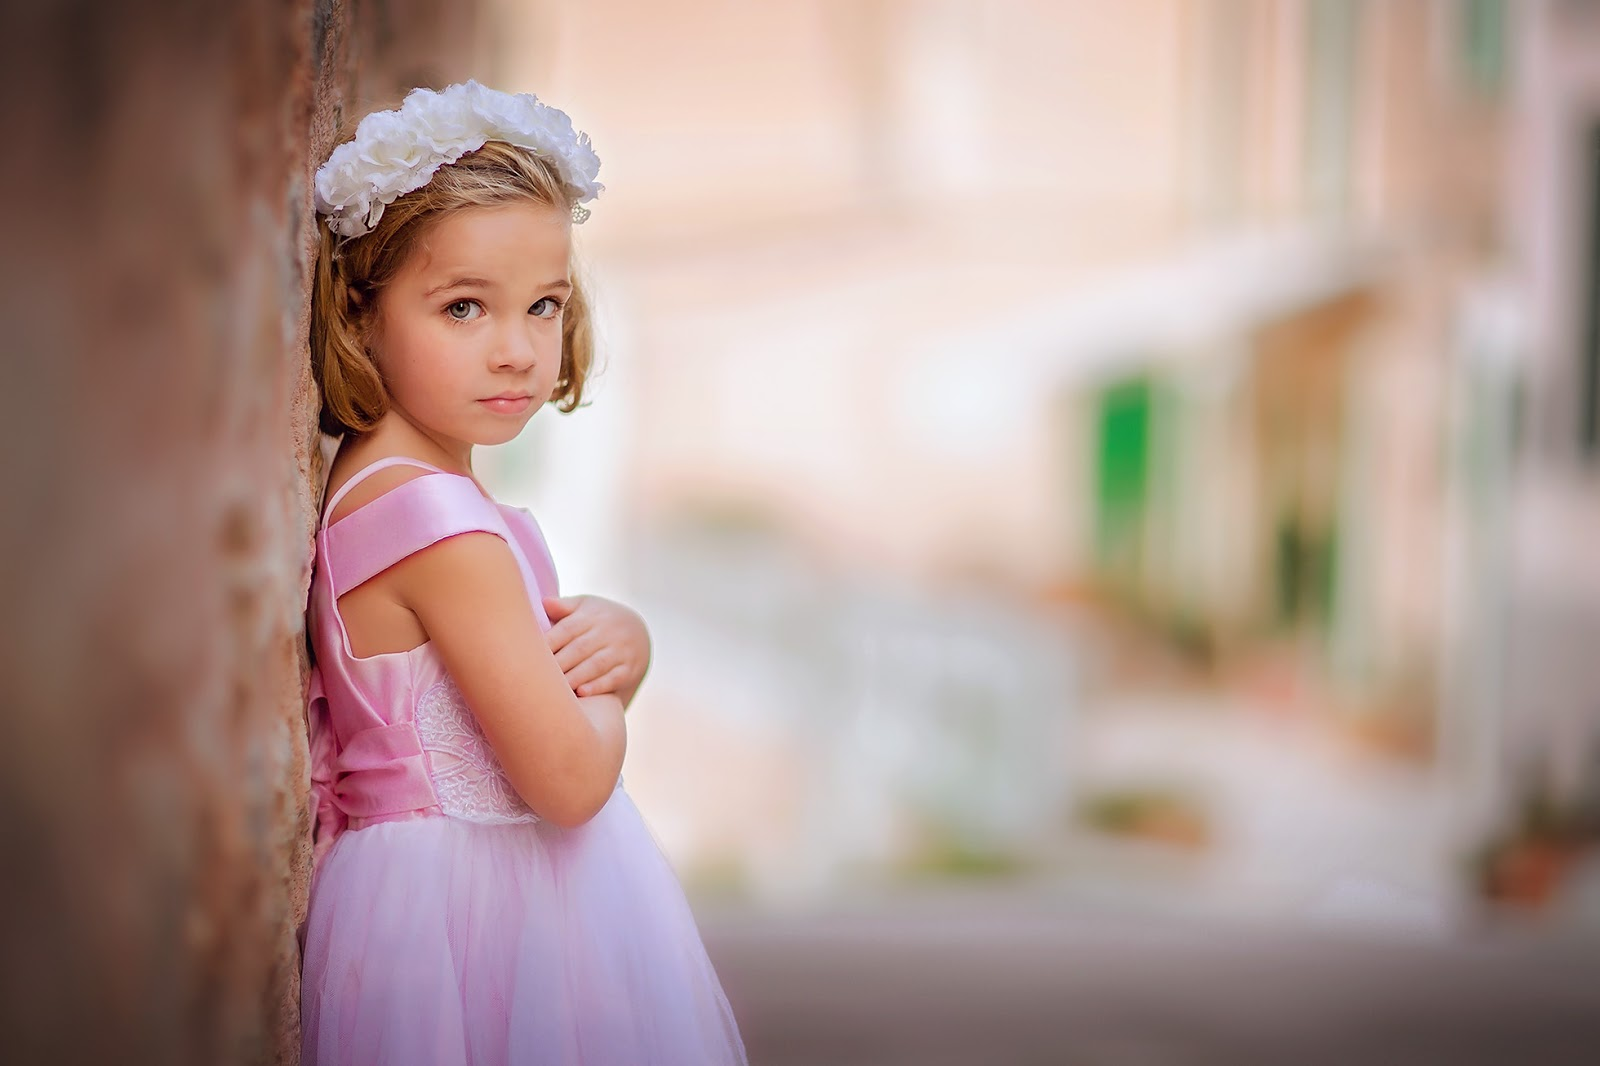 Canon Portrait of a young girl in a pink dress standing against a wall at Mallorca in Spain by Willie Kers